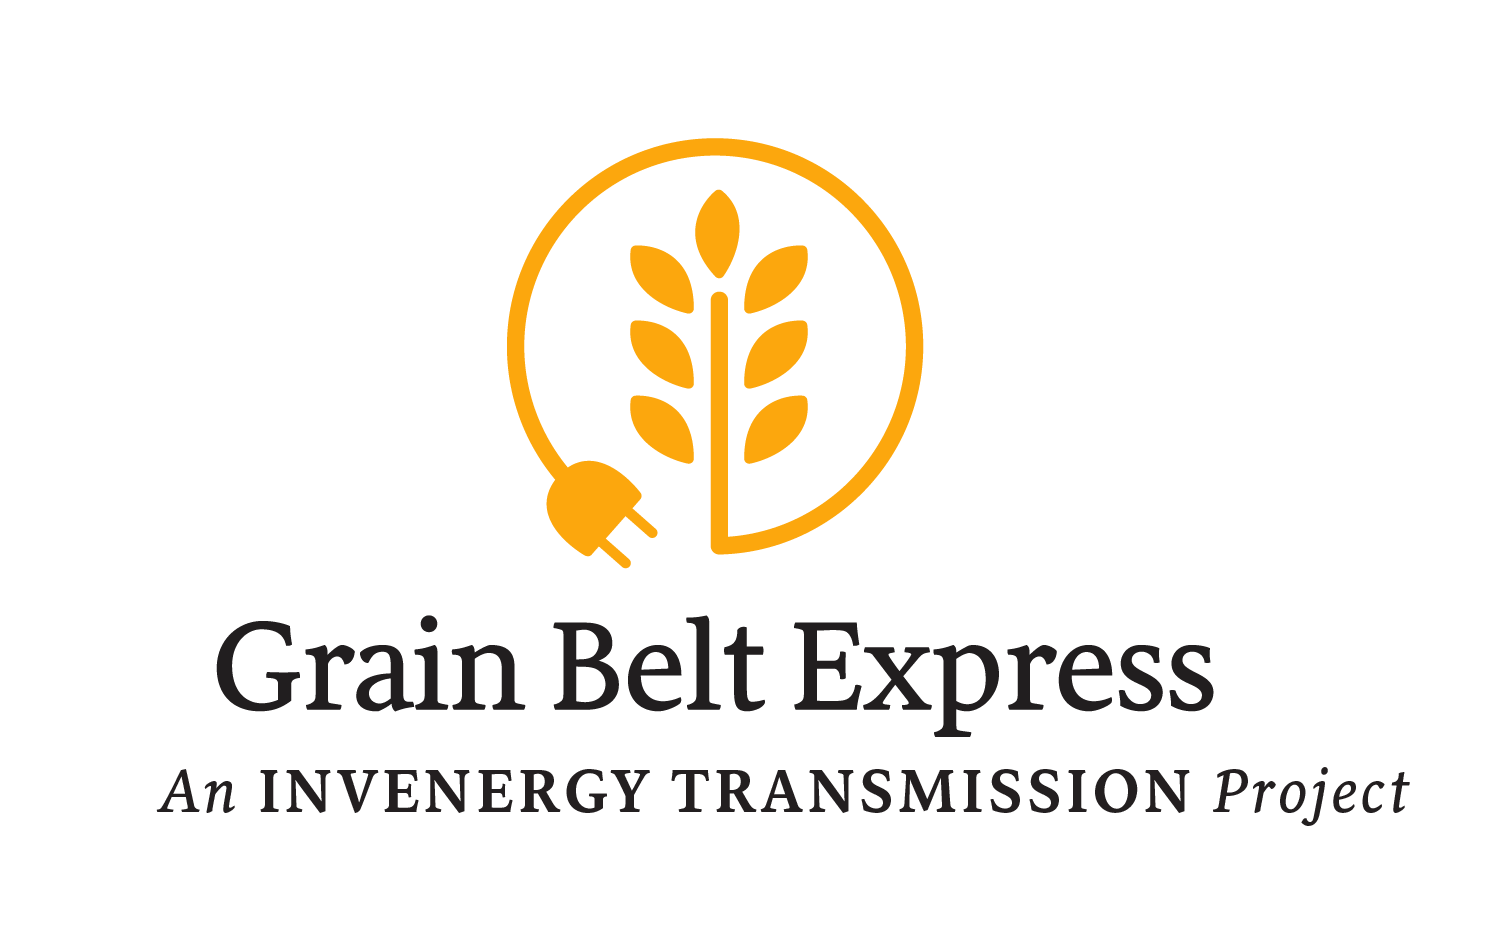 Grain Belt Express